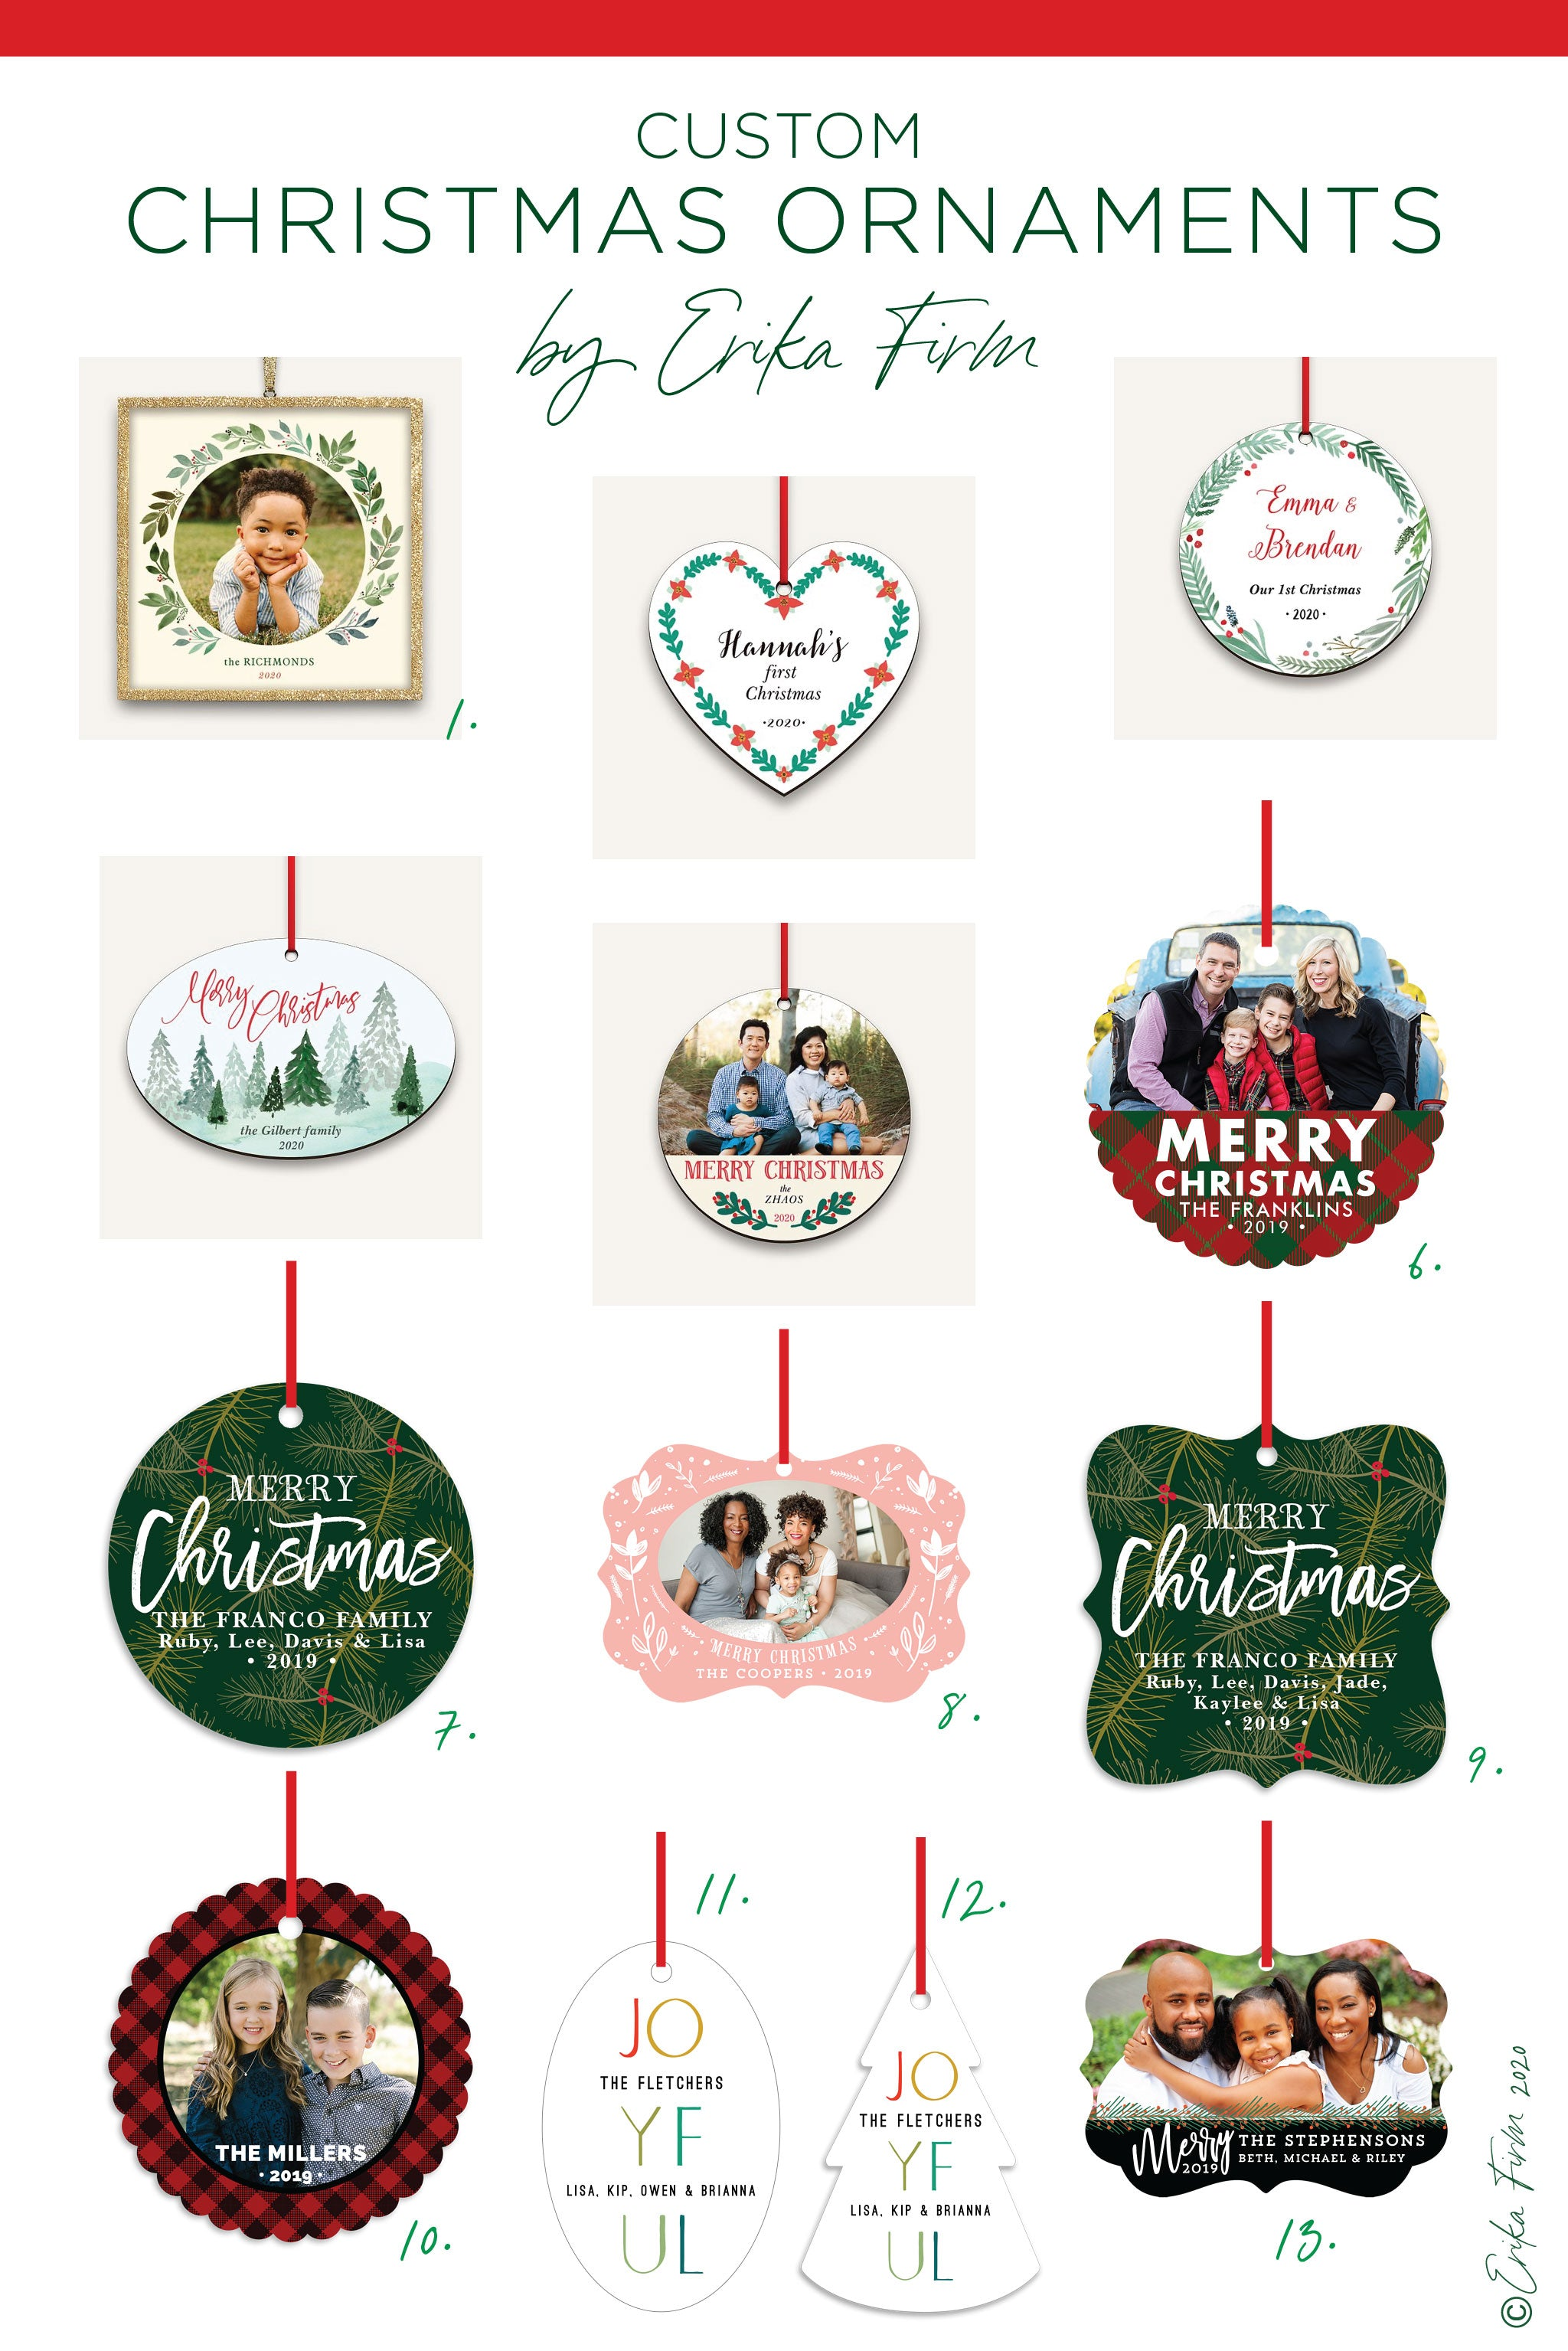 Custom Christmas Ornaments 2020 by Erika Firm